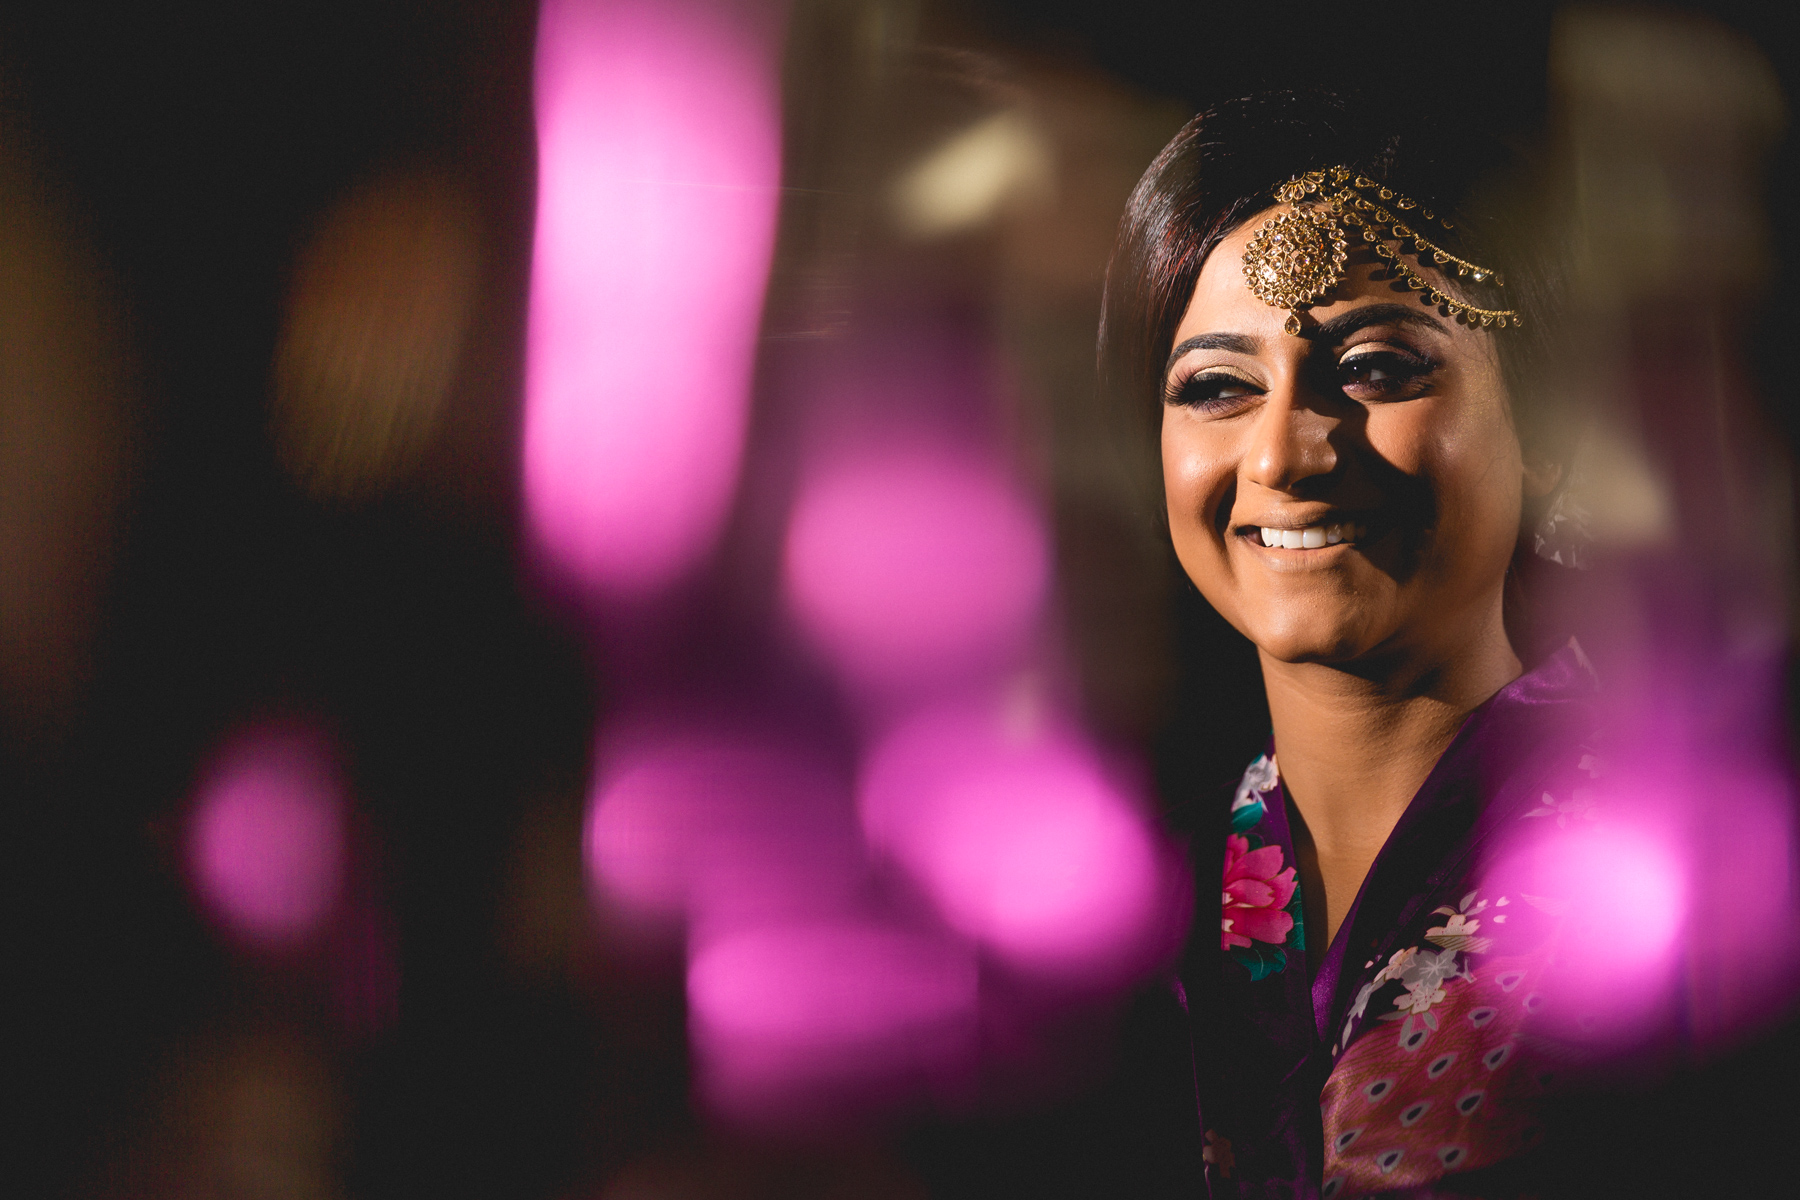 indian-south-asian-wedding-getting-ready-details-59.jpg